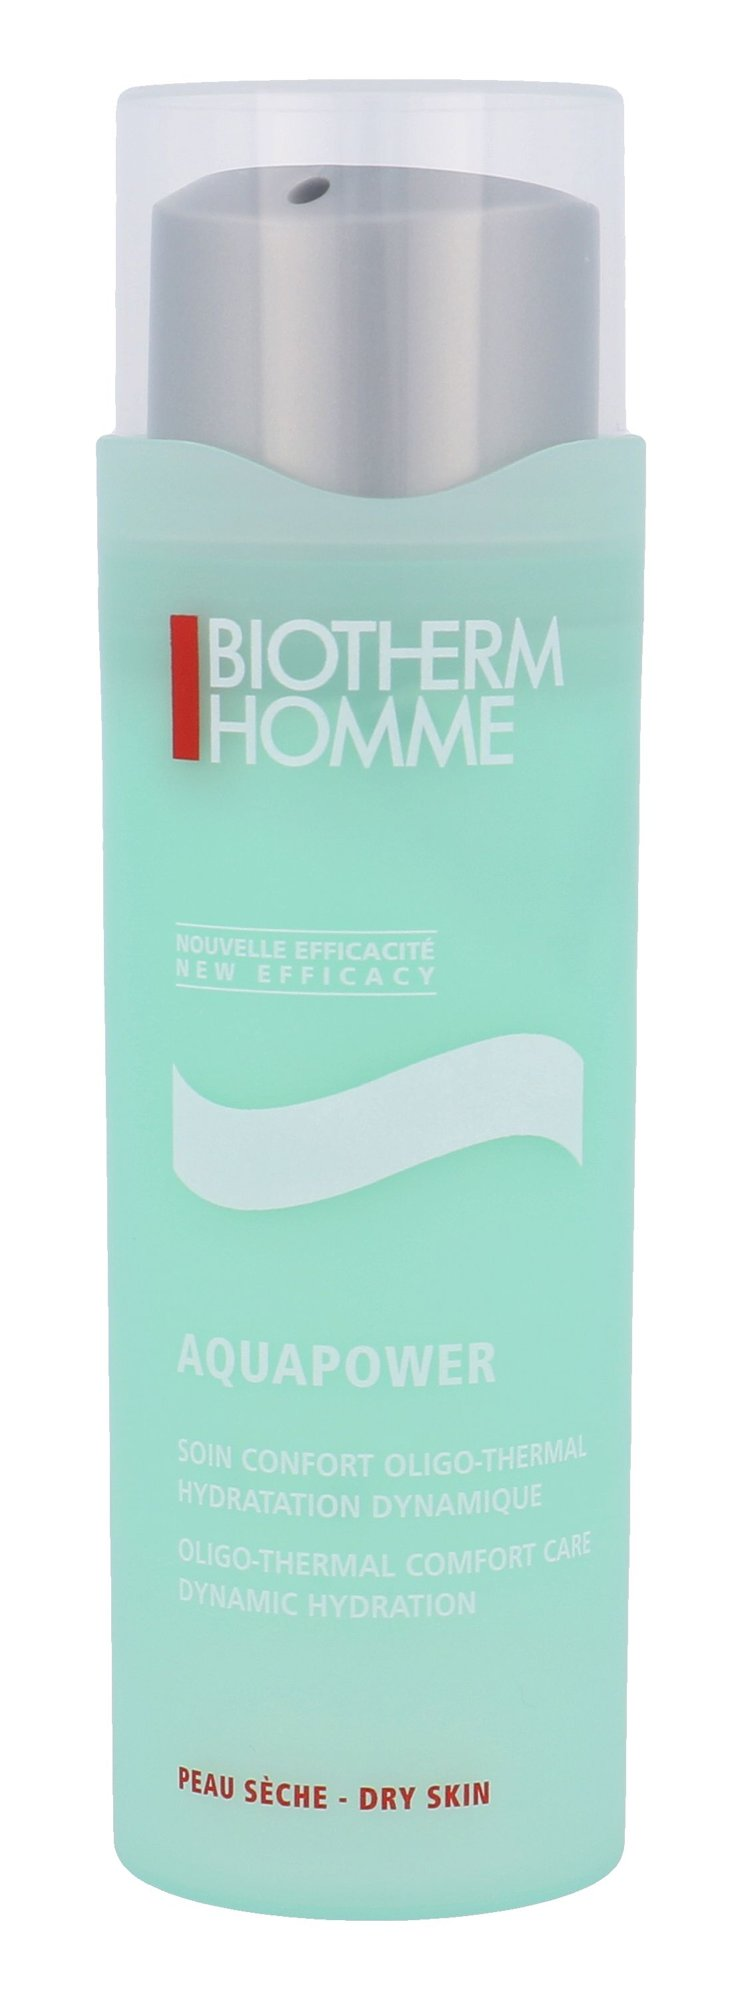 Biotherm Homme Aquapower Cosmetic 75ml